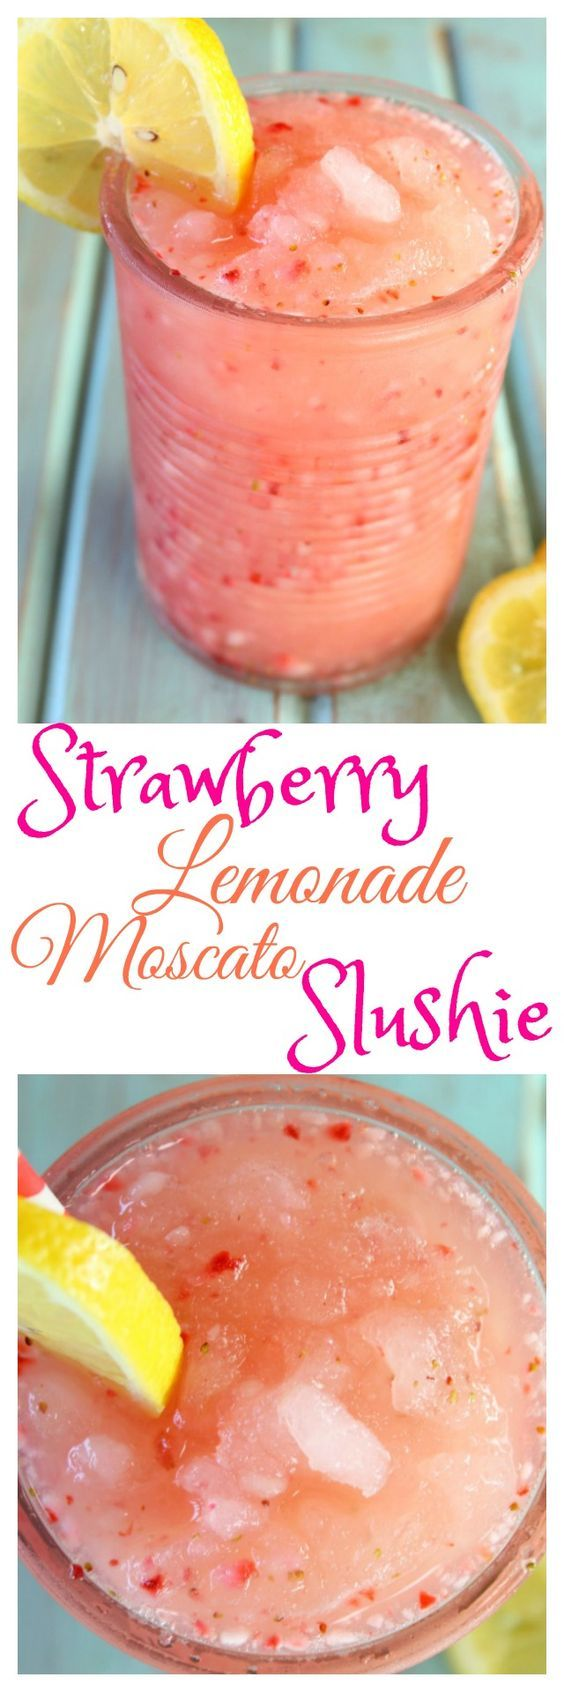 Strawberry Lemonade Moscato Slushie Recipe is a delicious cocktail for summer parties and get togethers. From MissintheKitchen.com